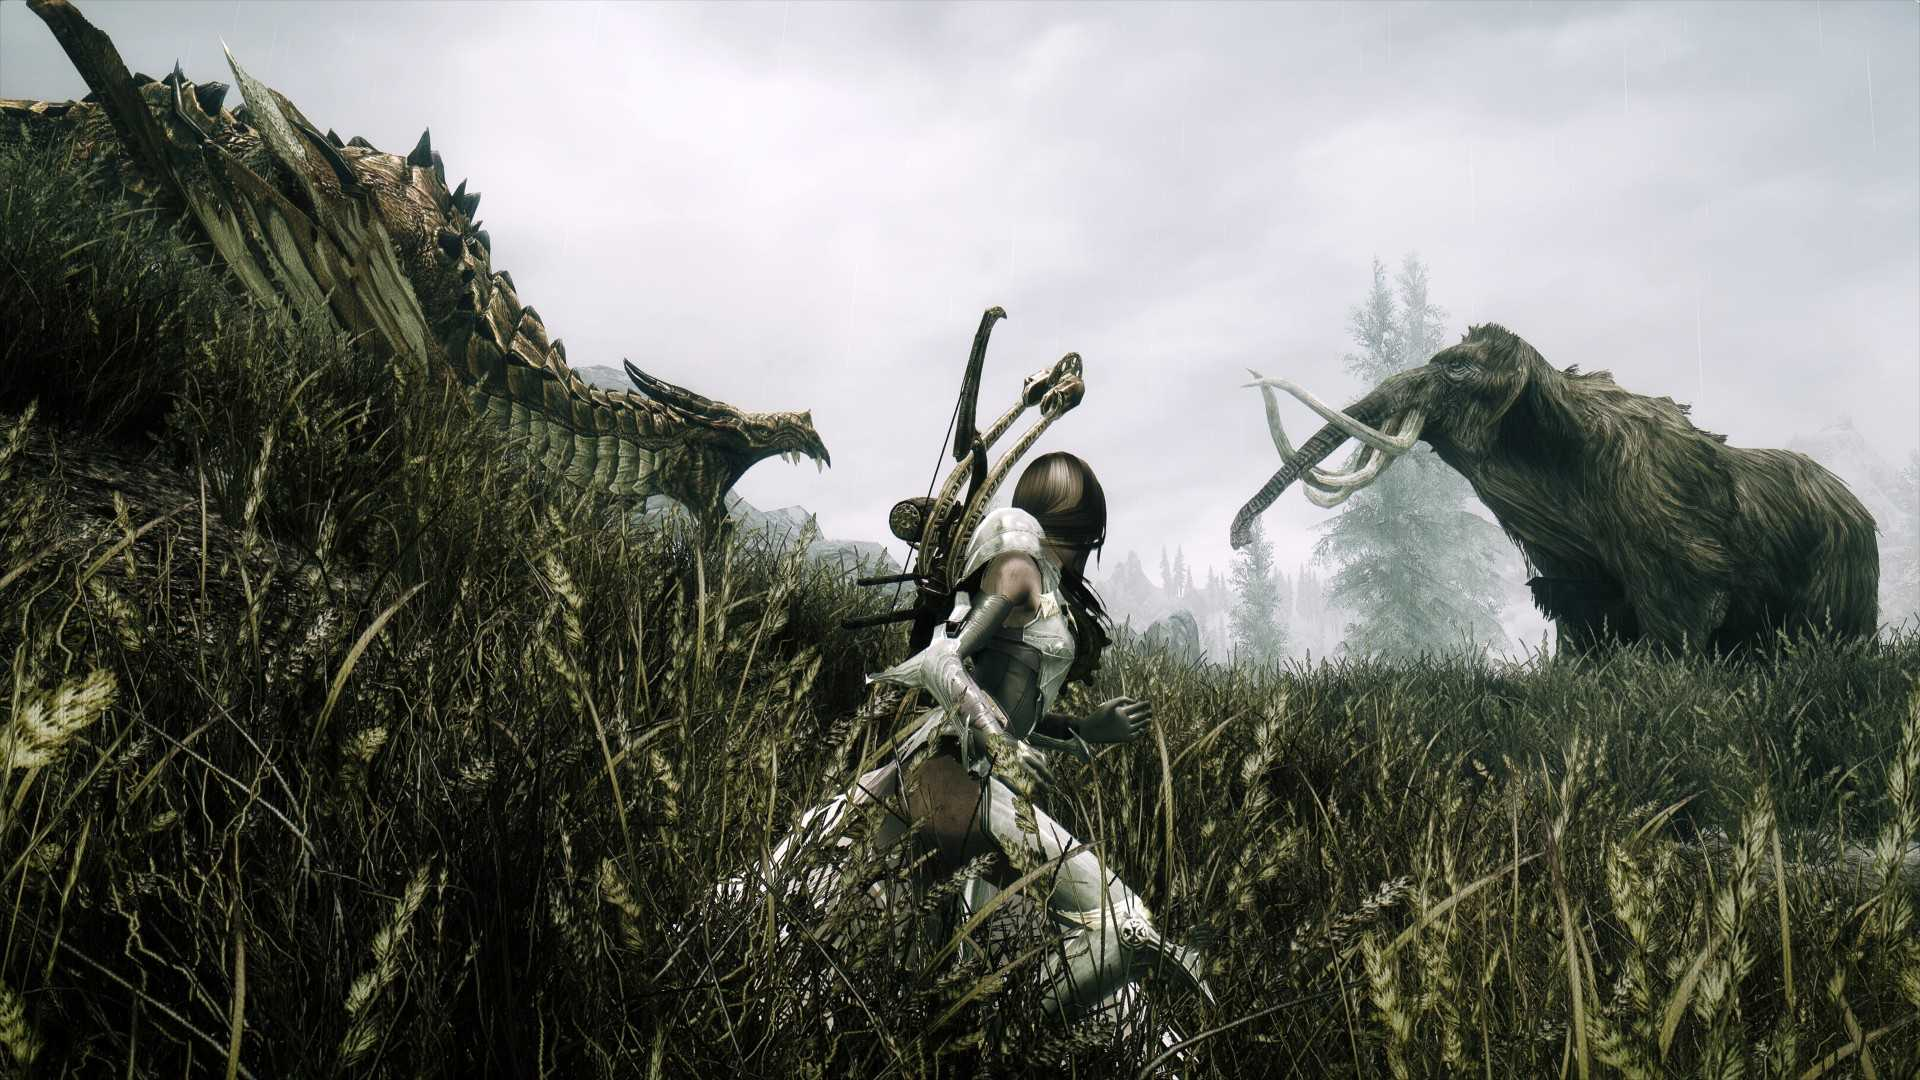 Fine Hdq Skyrim Image Hdq Cover Wallpaper Nice